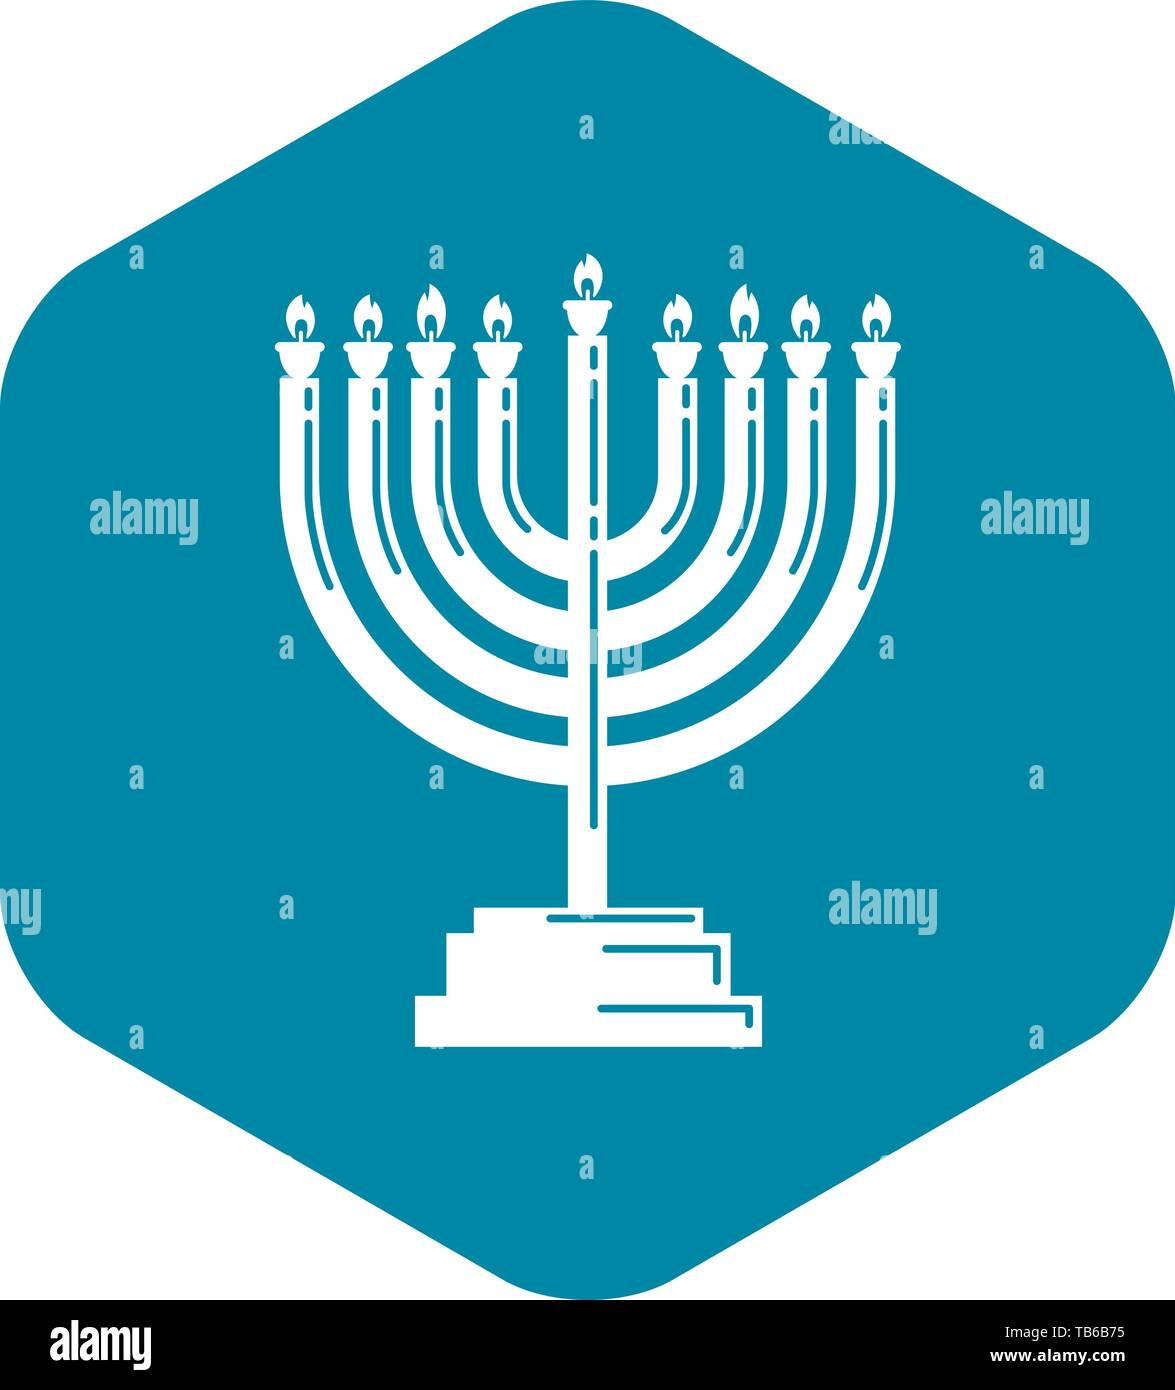 Menorah icon, simple style - Stock Vector